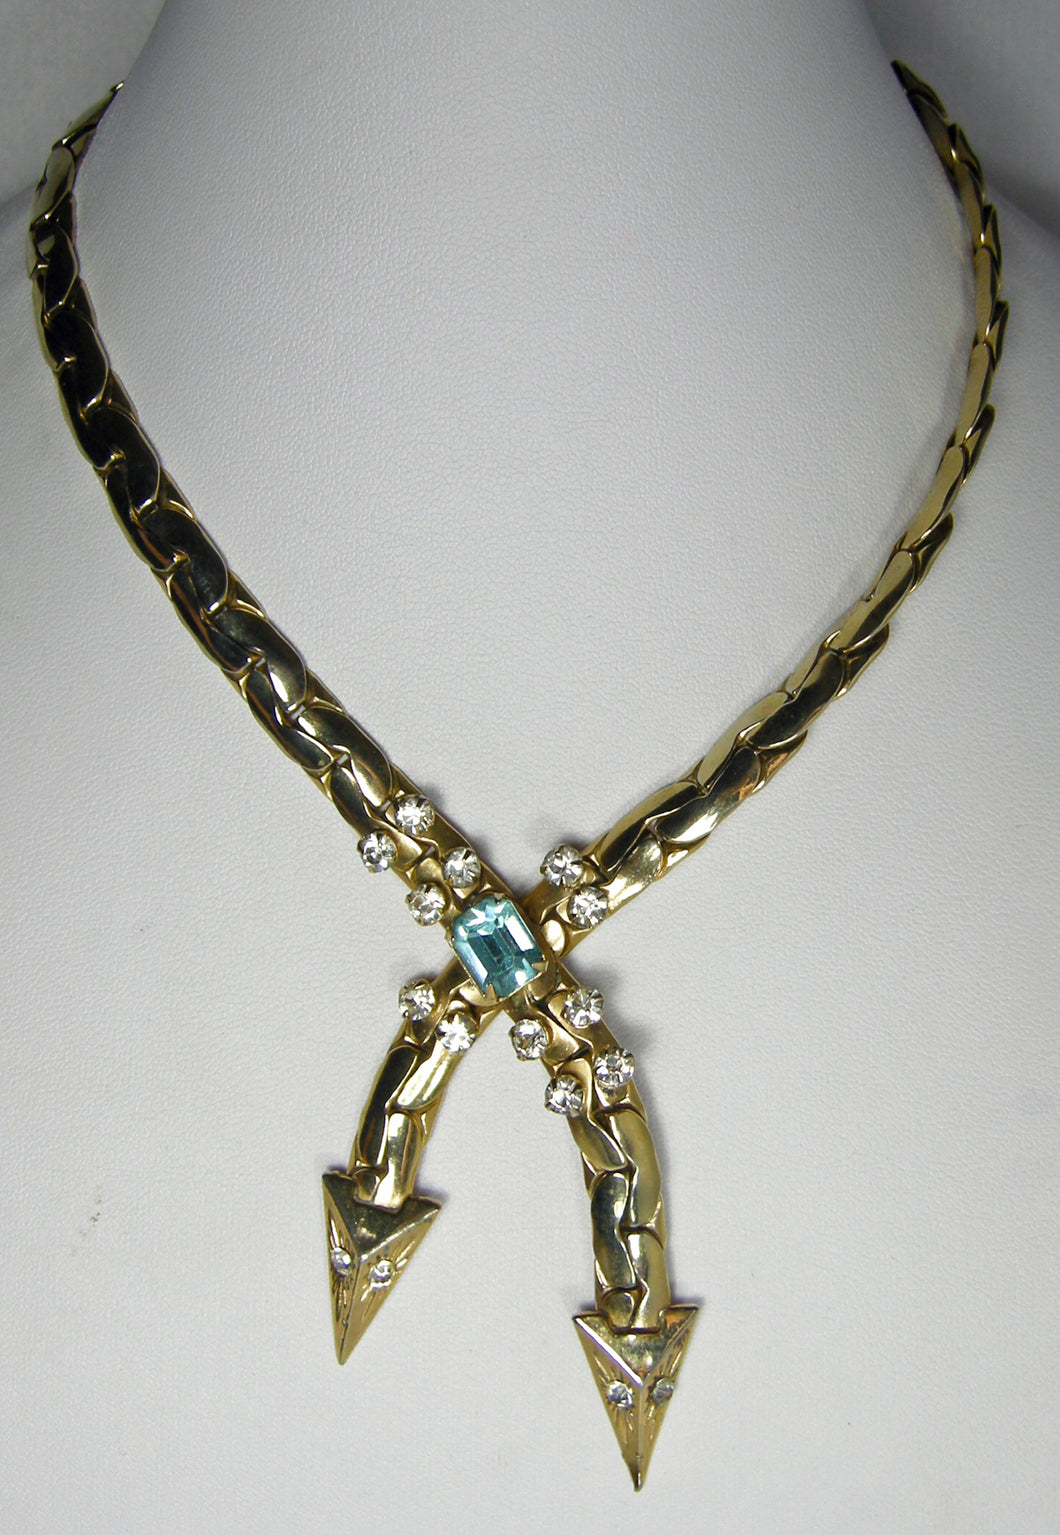 Vintage Two-Headed Snake Necklace With a Faux Aquamarine Crystal